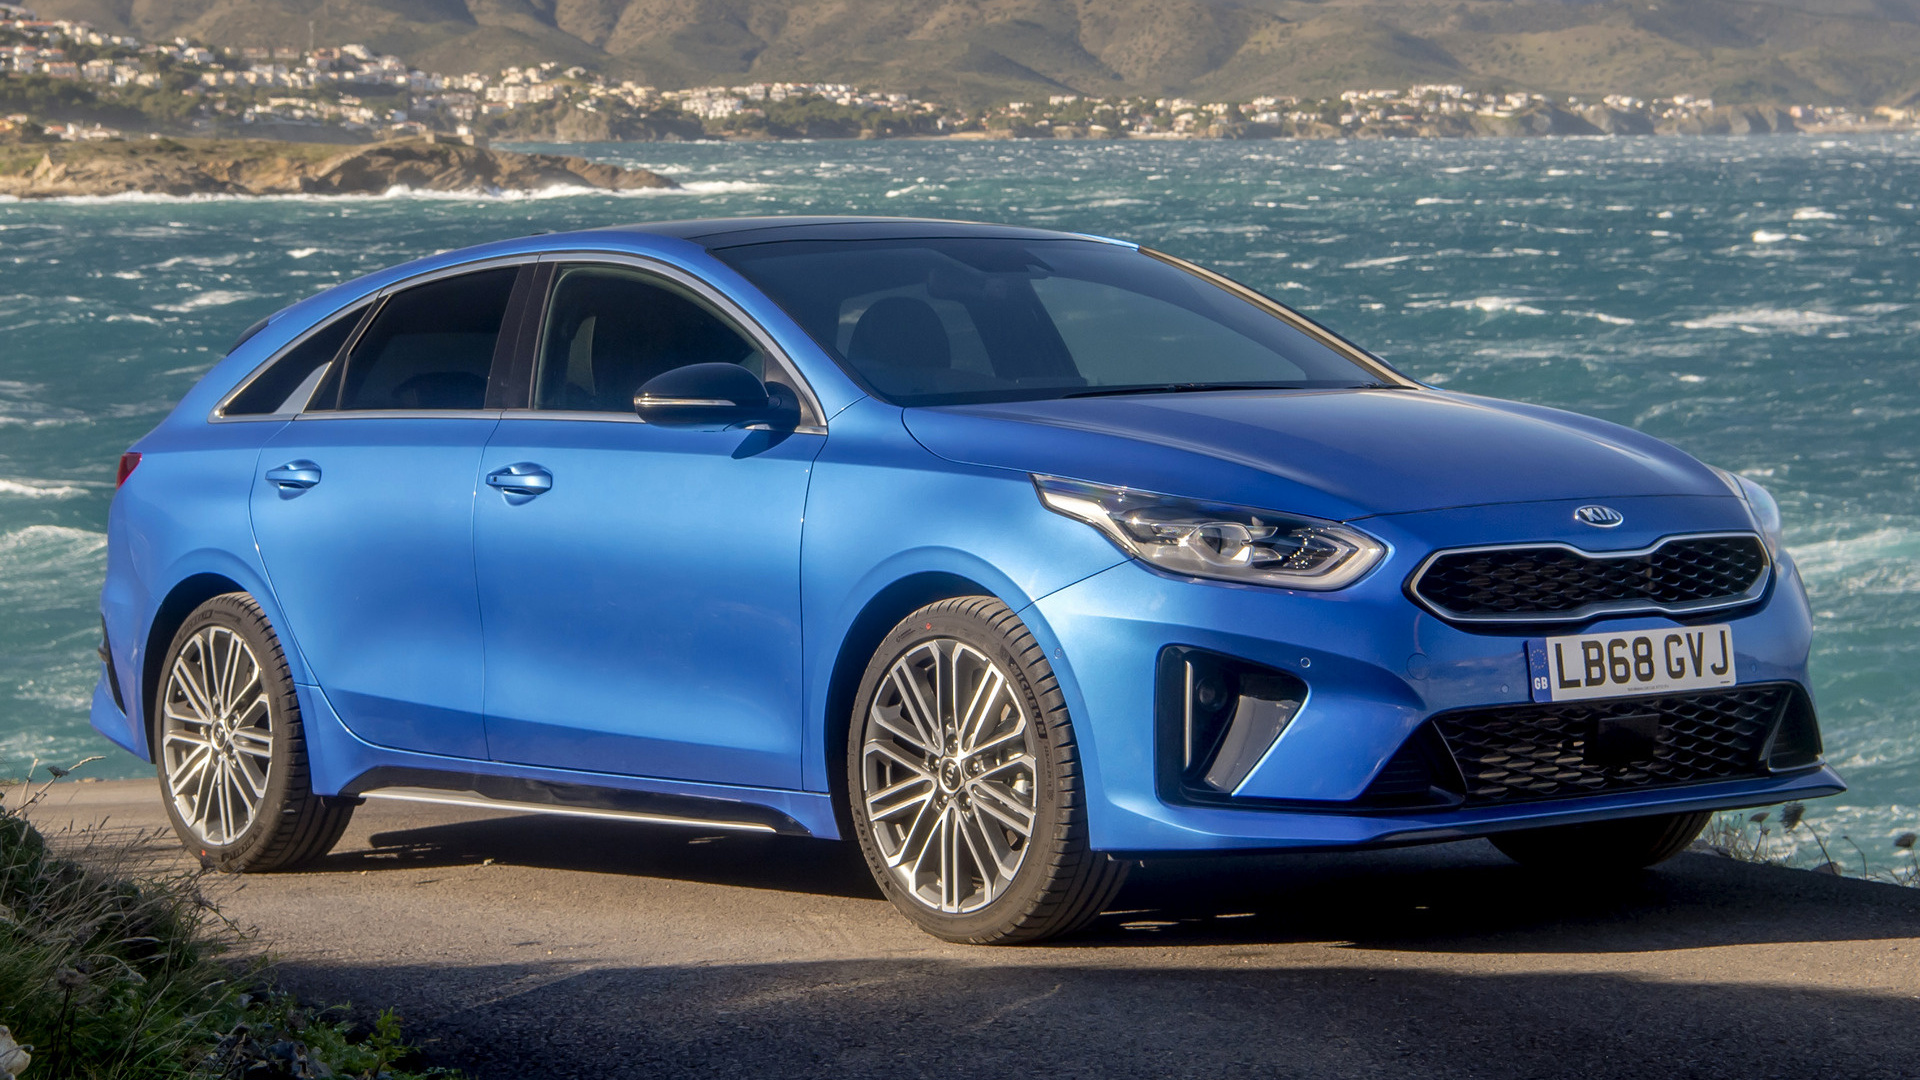 2019 Kia ProCeed GT Line (UK) - Wallpapers and HD Images | Car Pixel